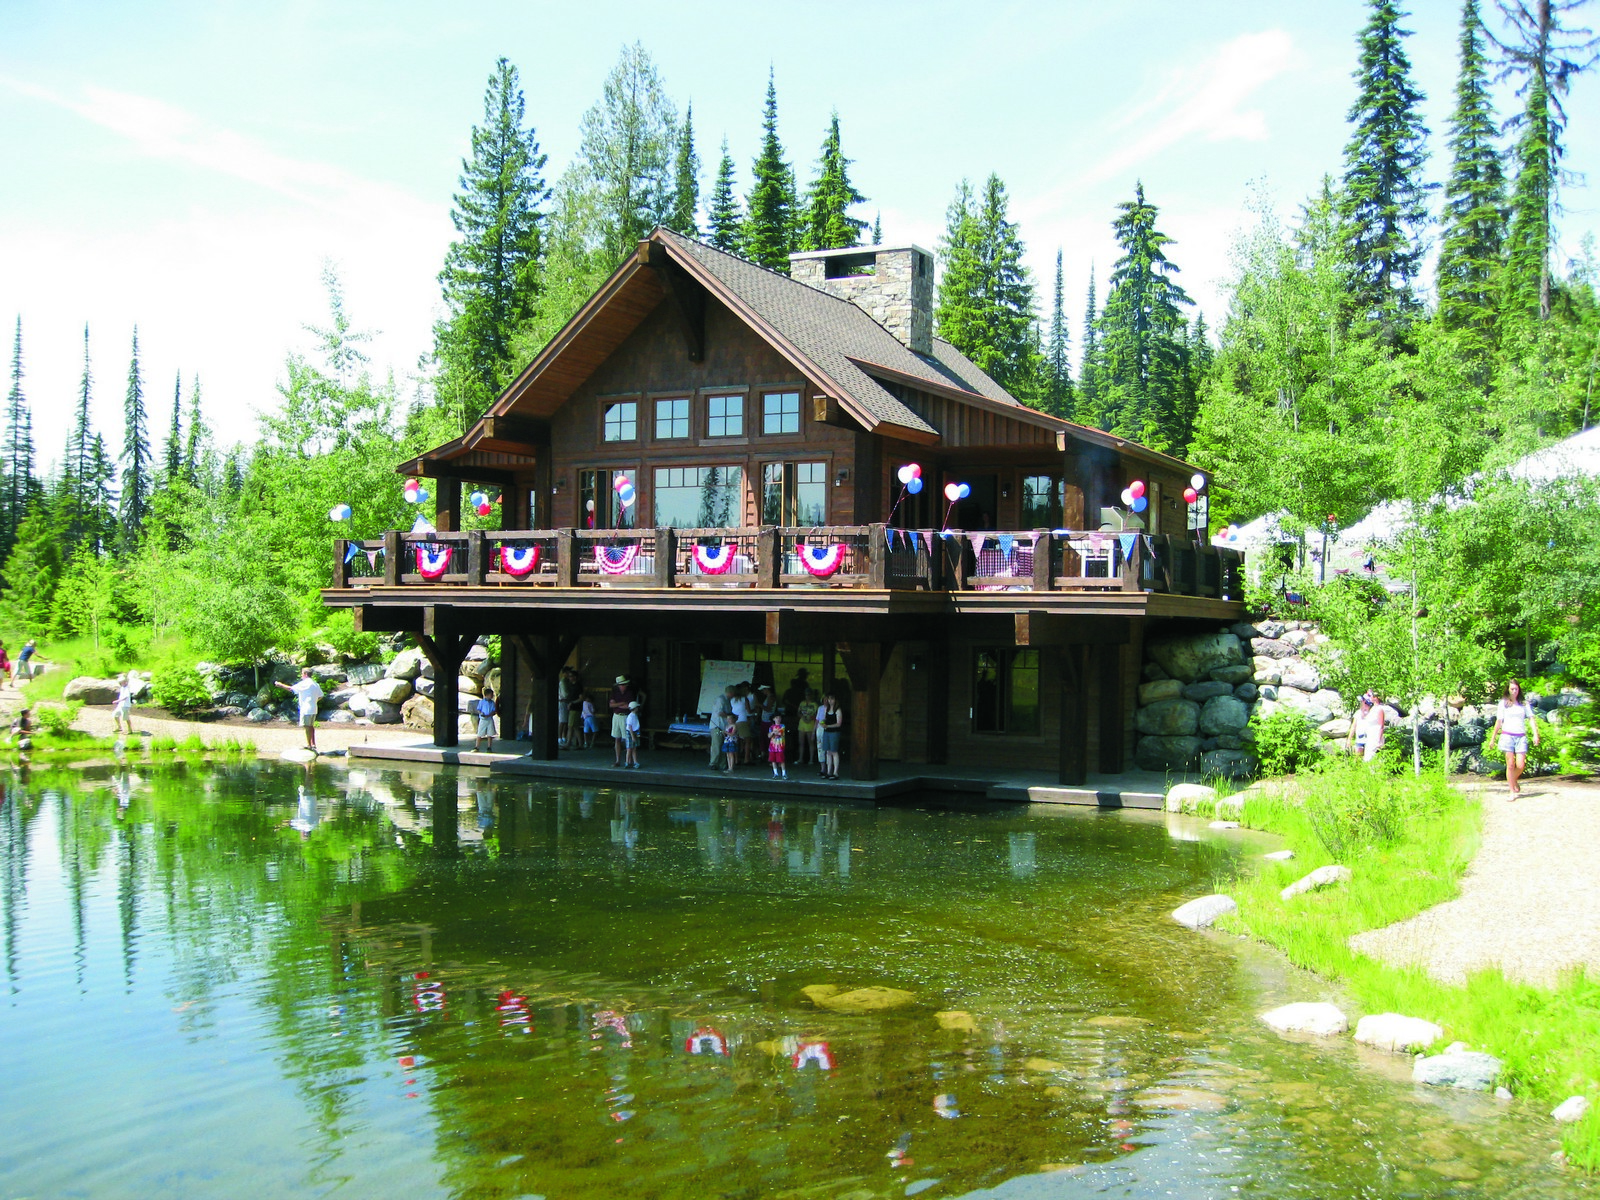 Additional photo for property listing at 235 Arrowhead Cir , Whitefish, MT 59937 235  Arrowhead Dr Whitefish, Montana 59937 United States